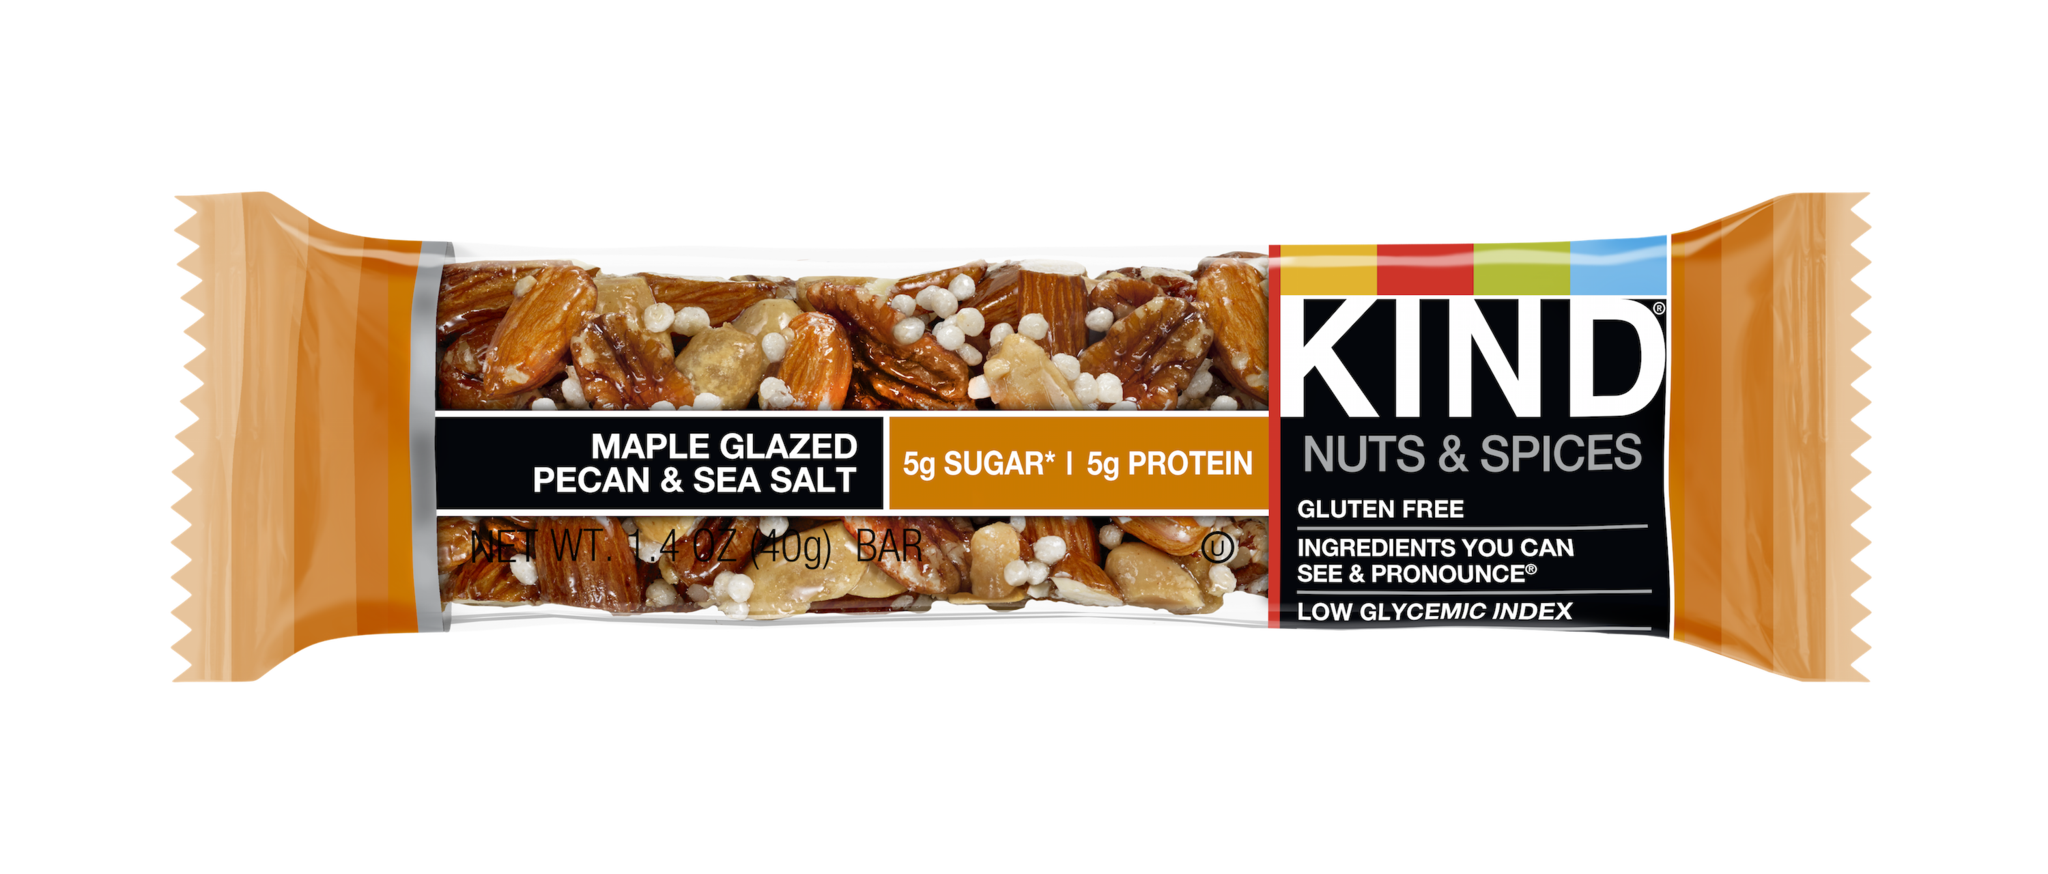 Kind Bar - Maple Glazed Pecan and Sea Salt